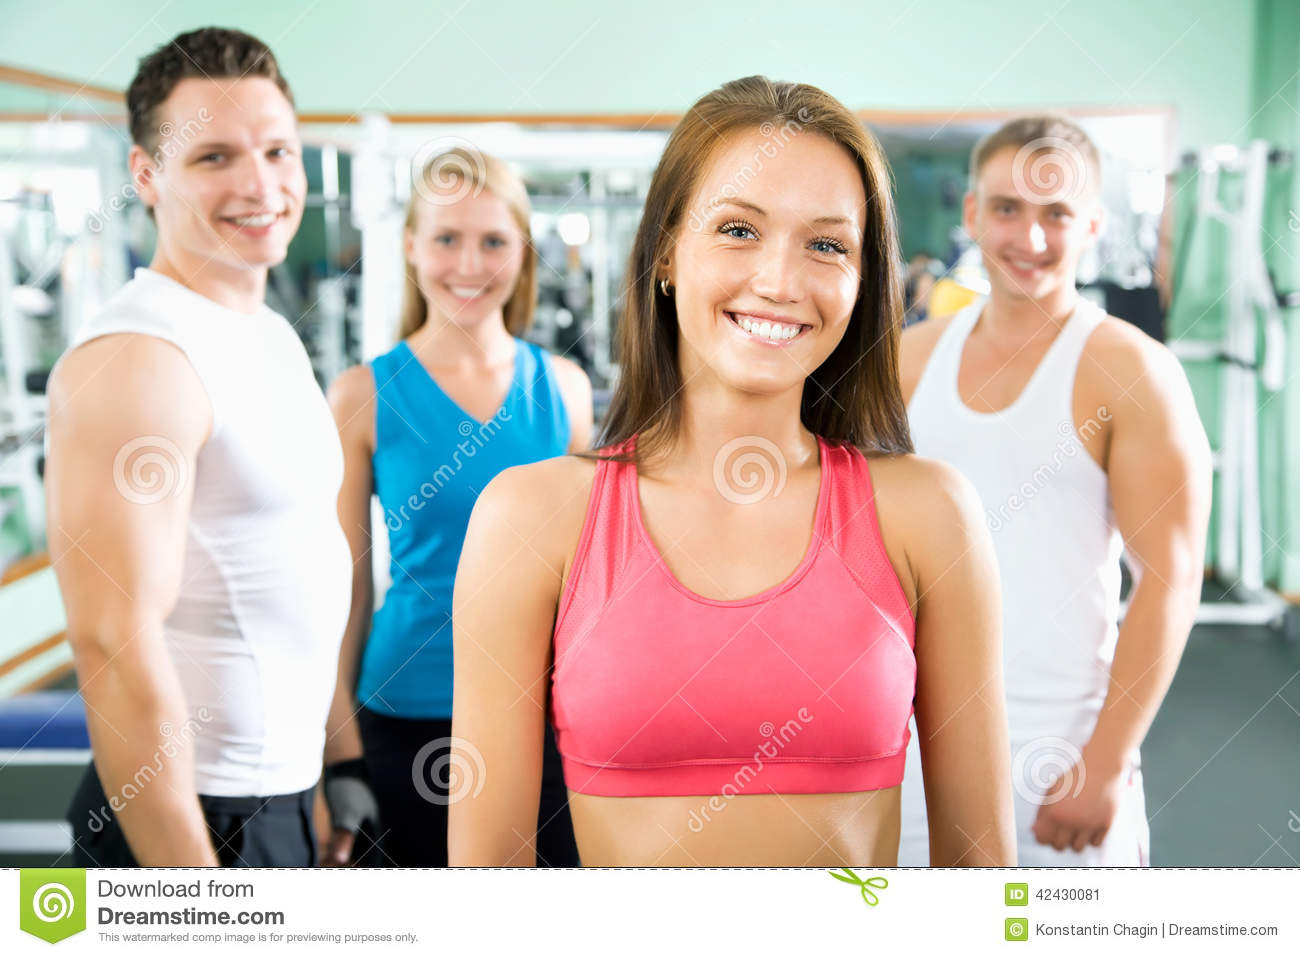 Woman smiling in front of a group of gym people